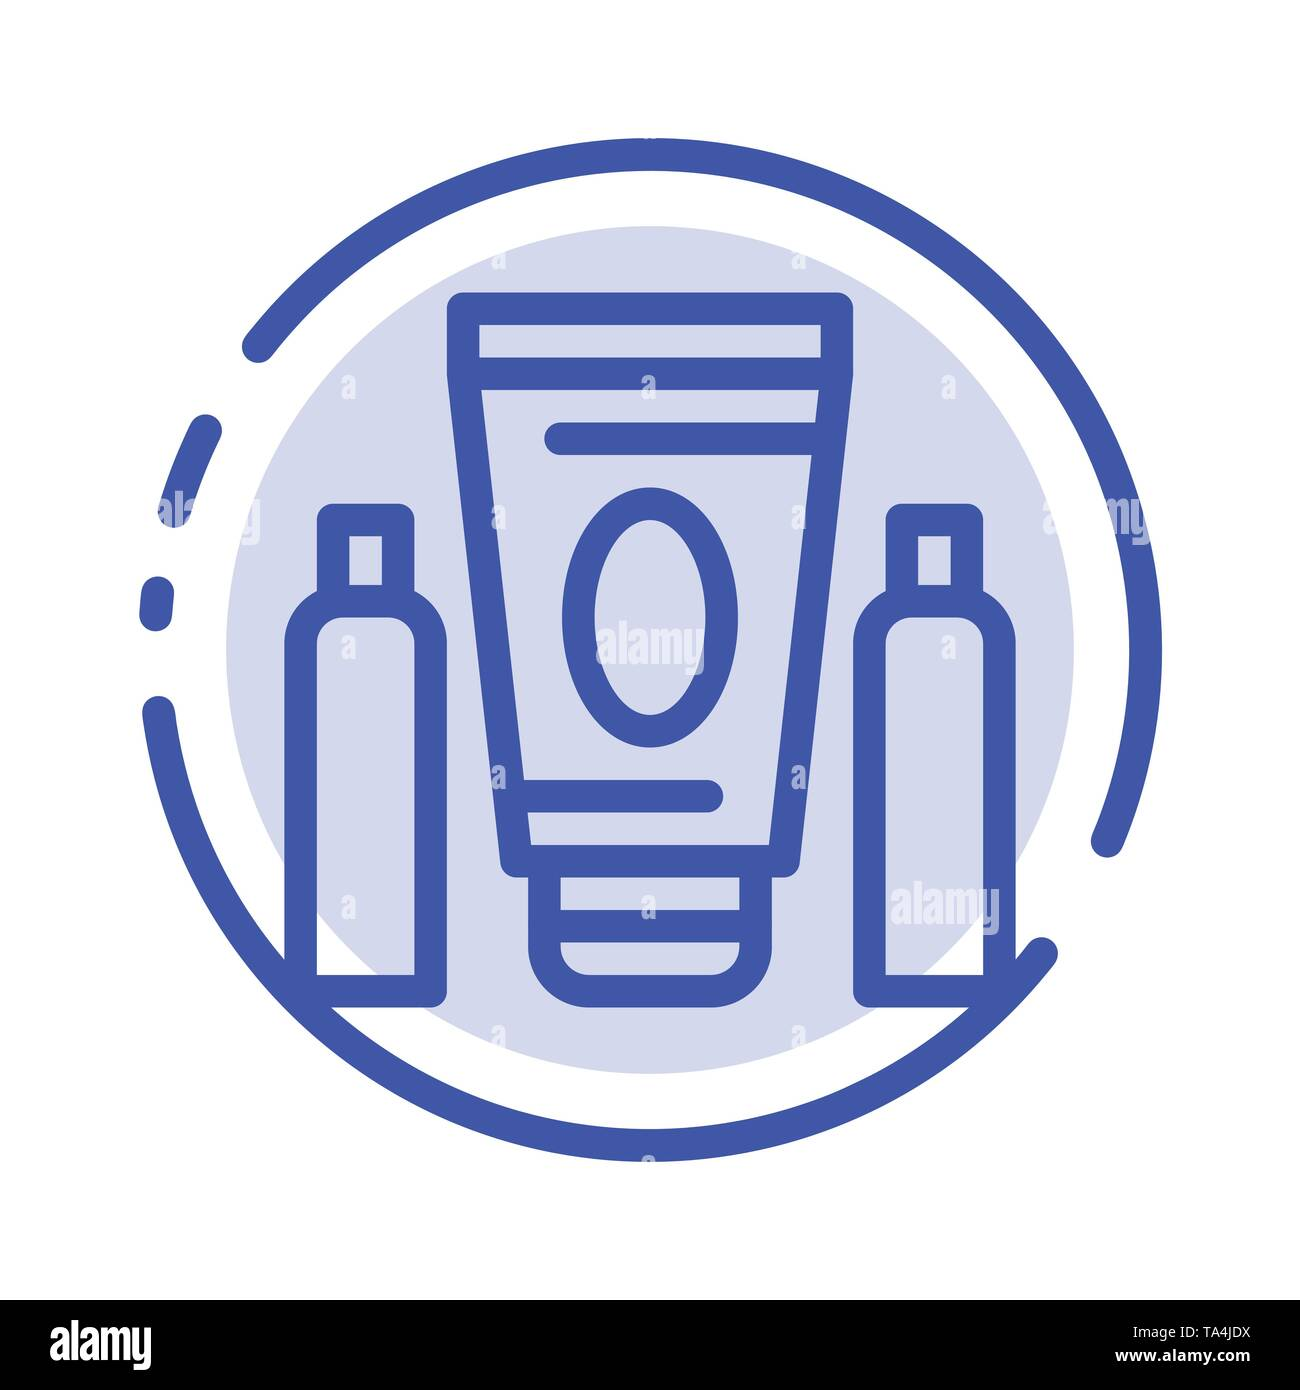 Sport, Cream, Medical, Healthcare Blue Dotted Line Line Icon - Stock Image